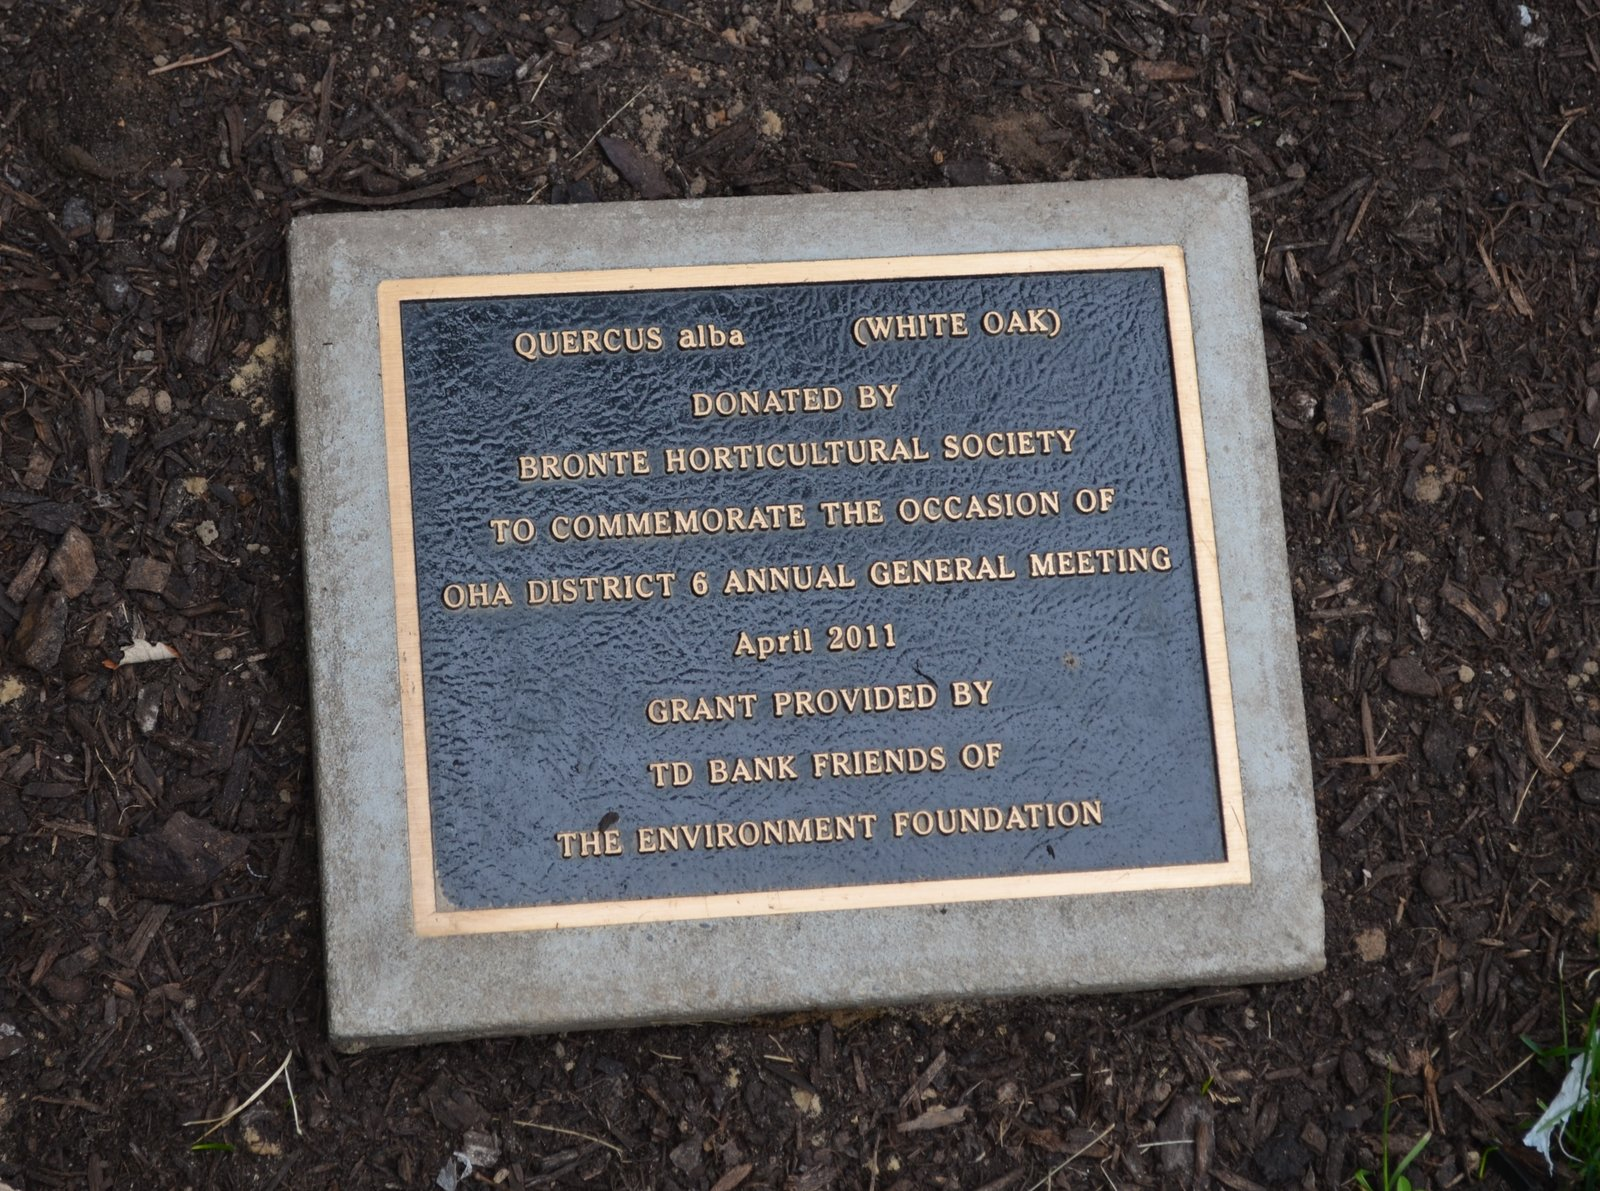 Bronte Horticultural Society plaque at Sovereign House commemorating OHA District 6